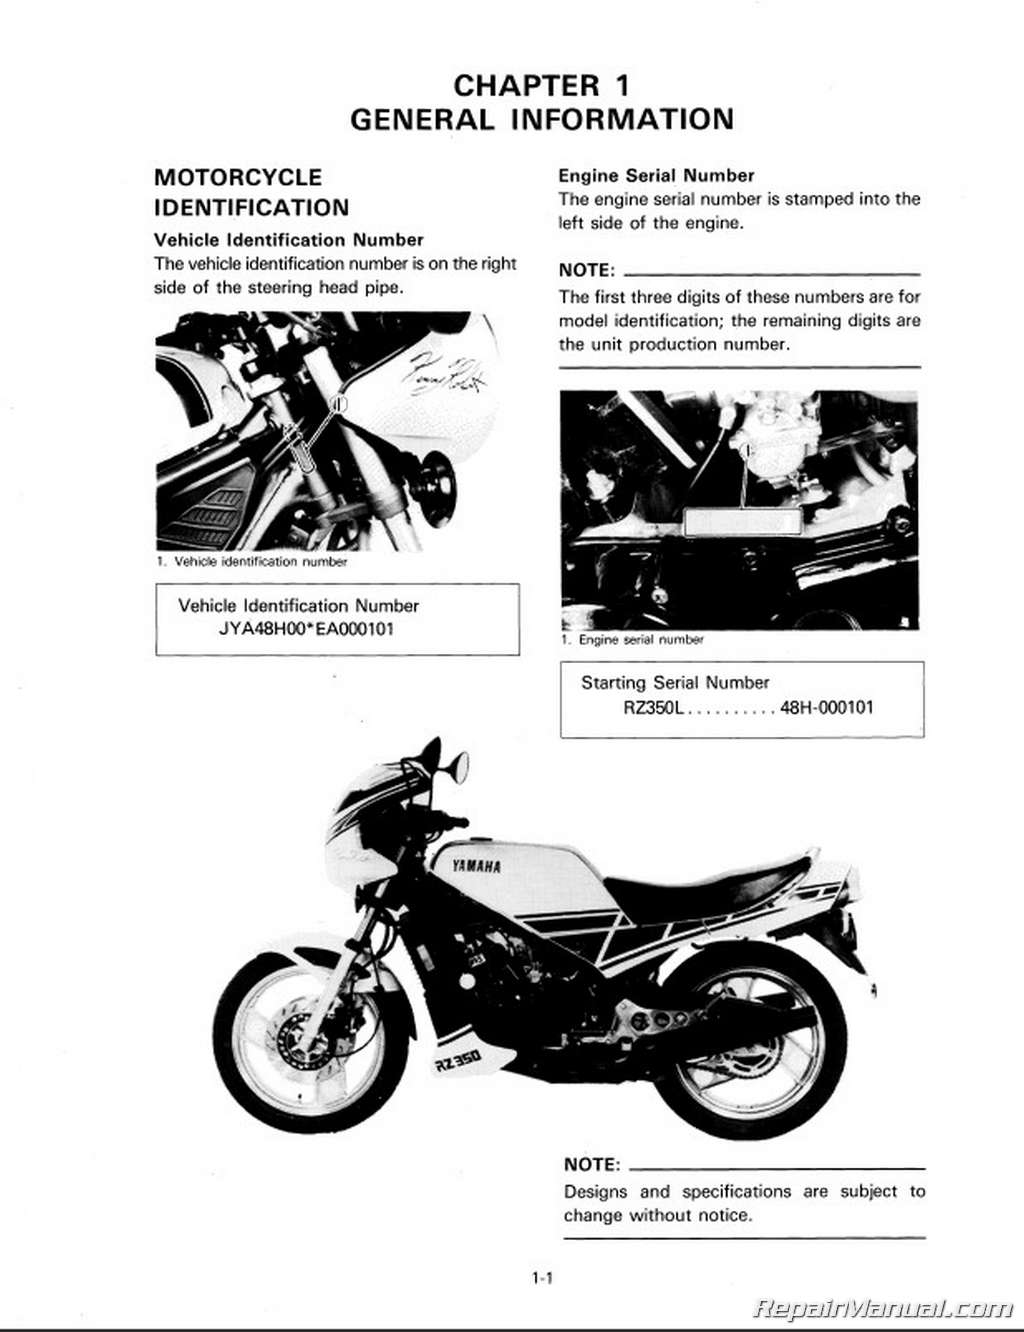 Print Online Honda Motorcycle Motorcycle Repair Manuals